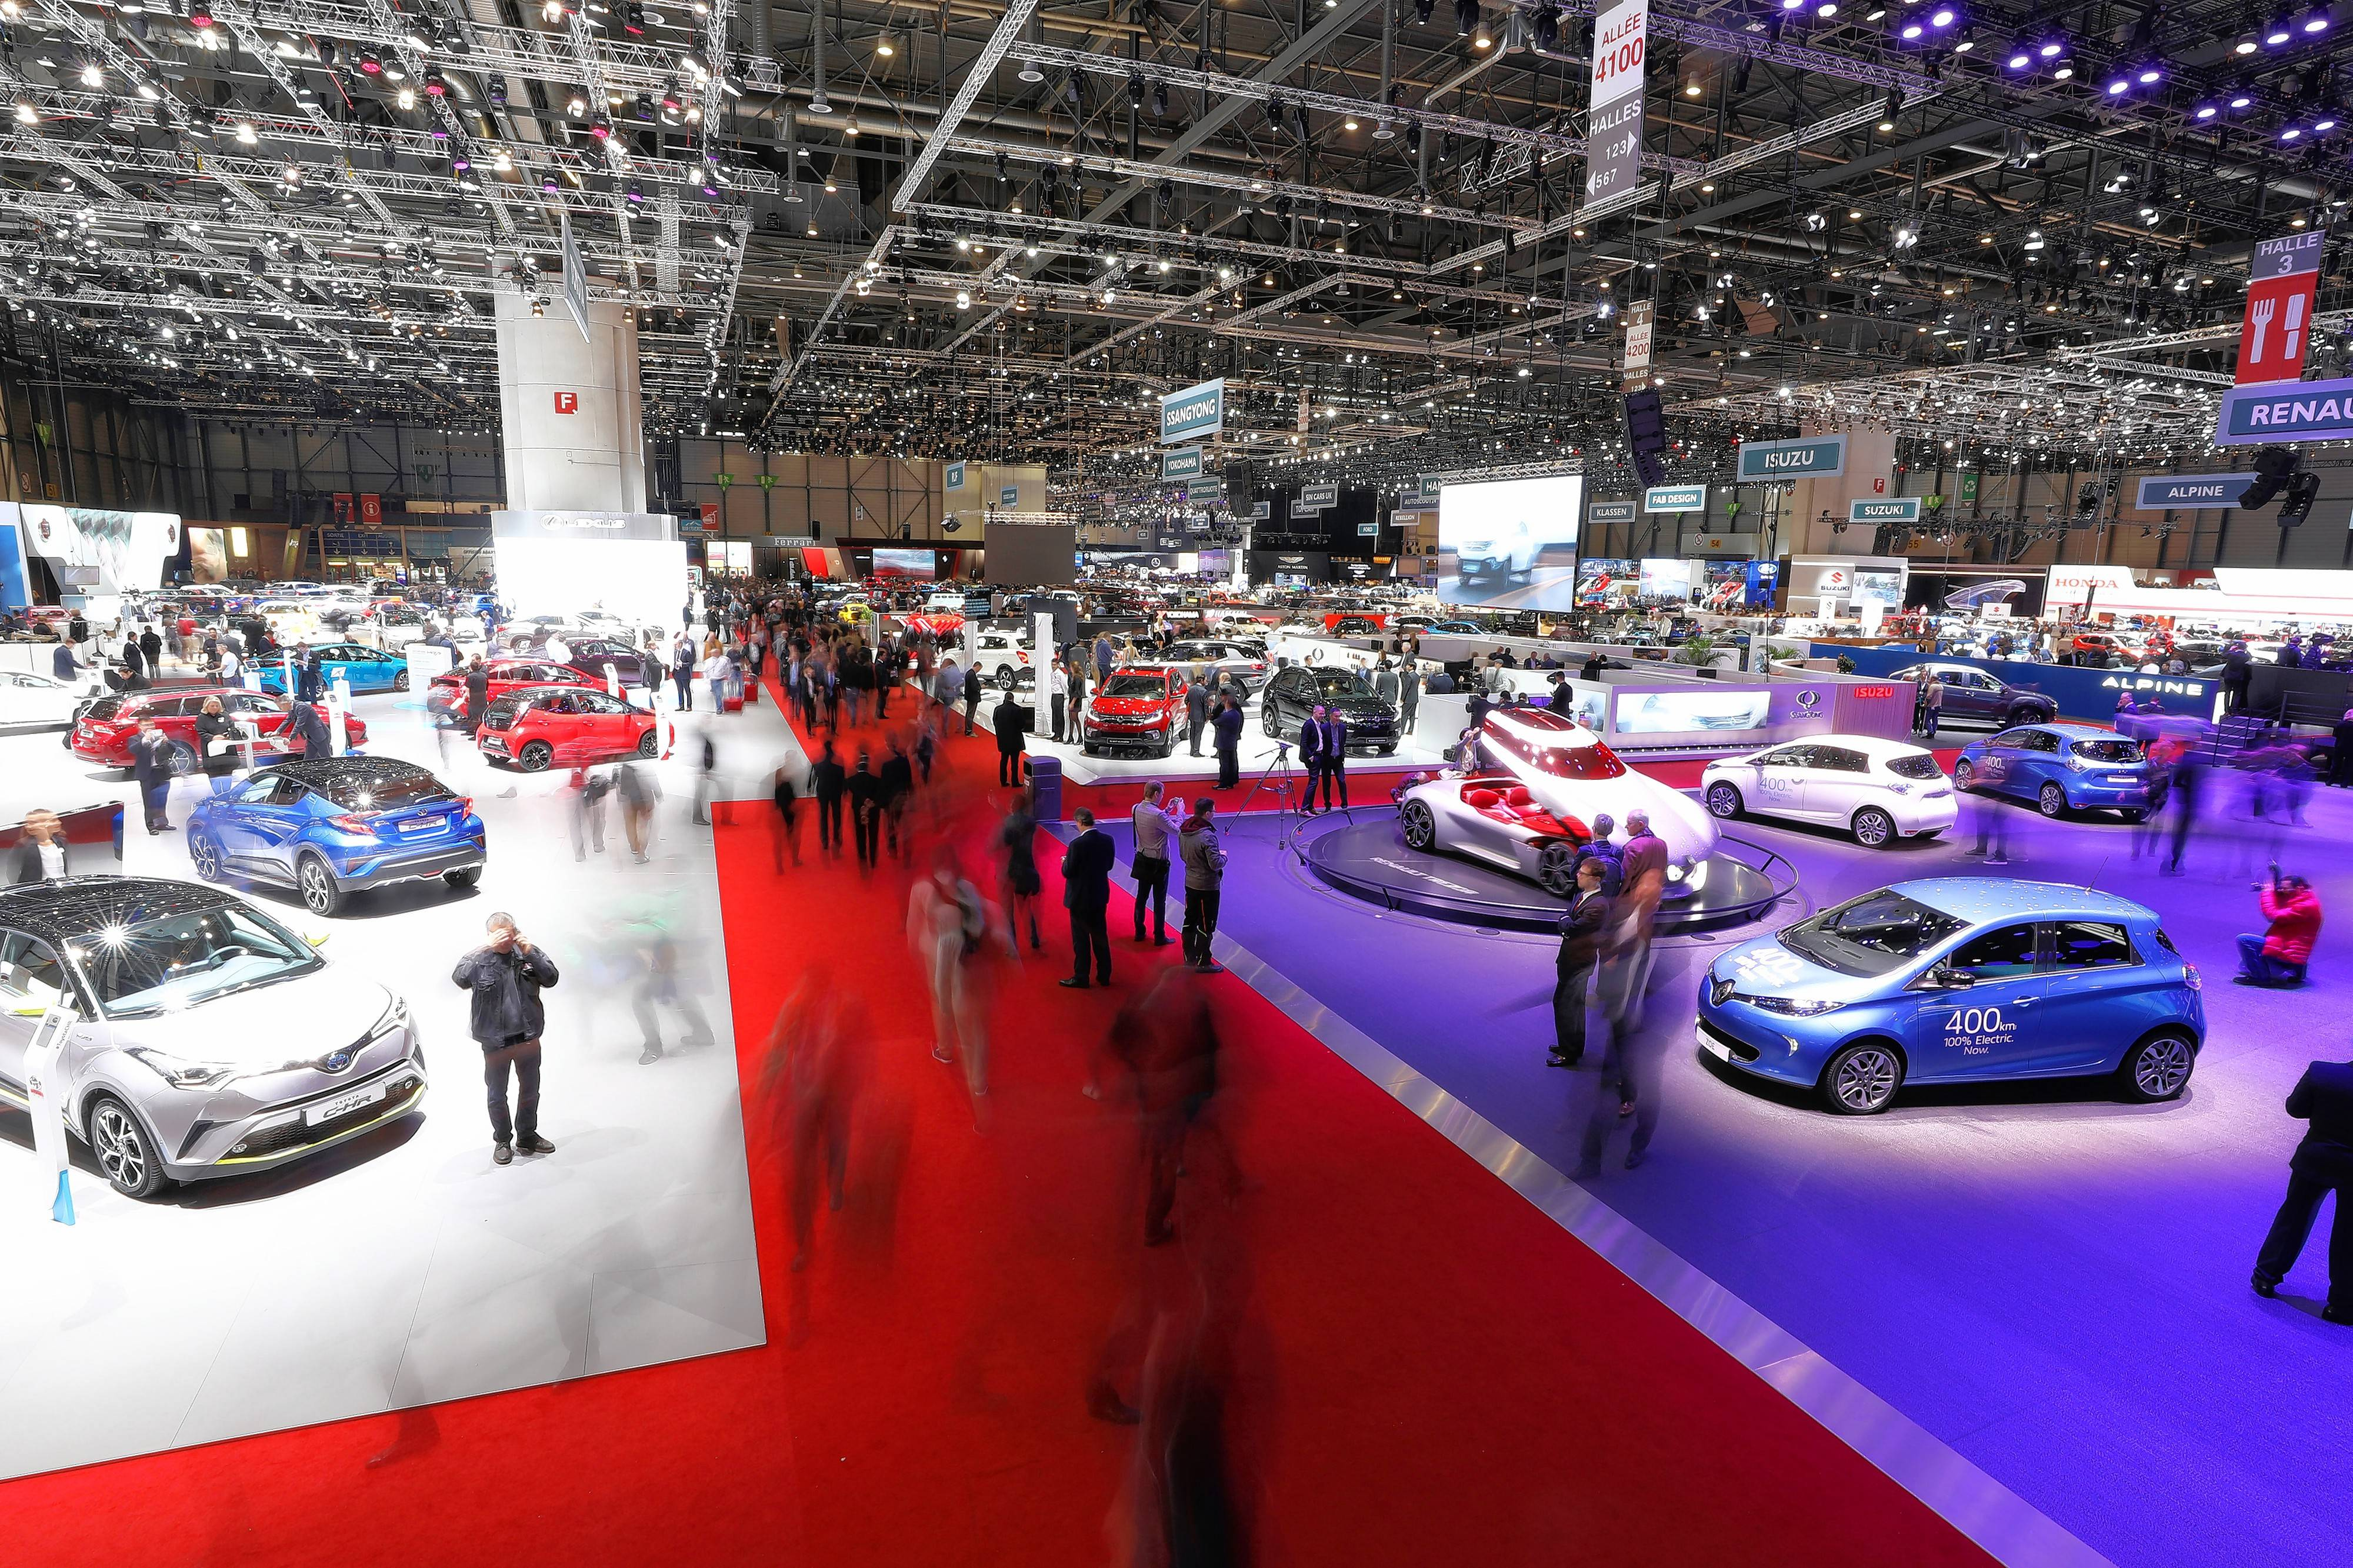 Automobiles stand on display in an exhibition hall at the 2017 Geneva International Motor Show in Geneva, Switzerland.